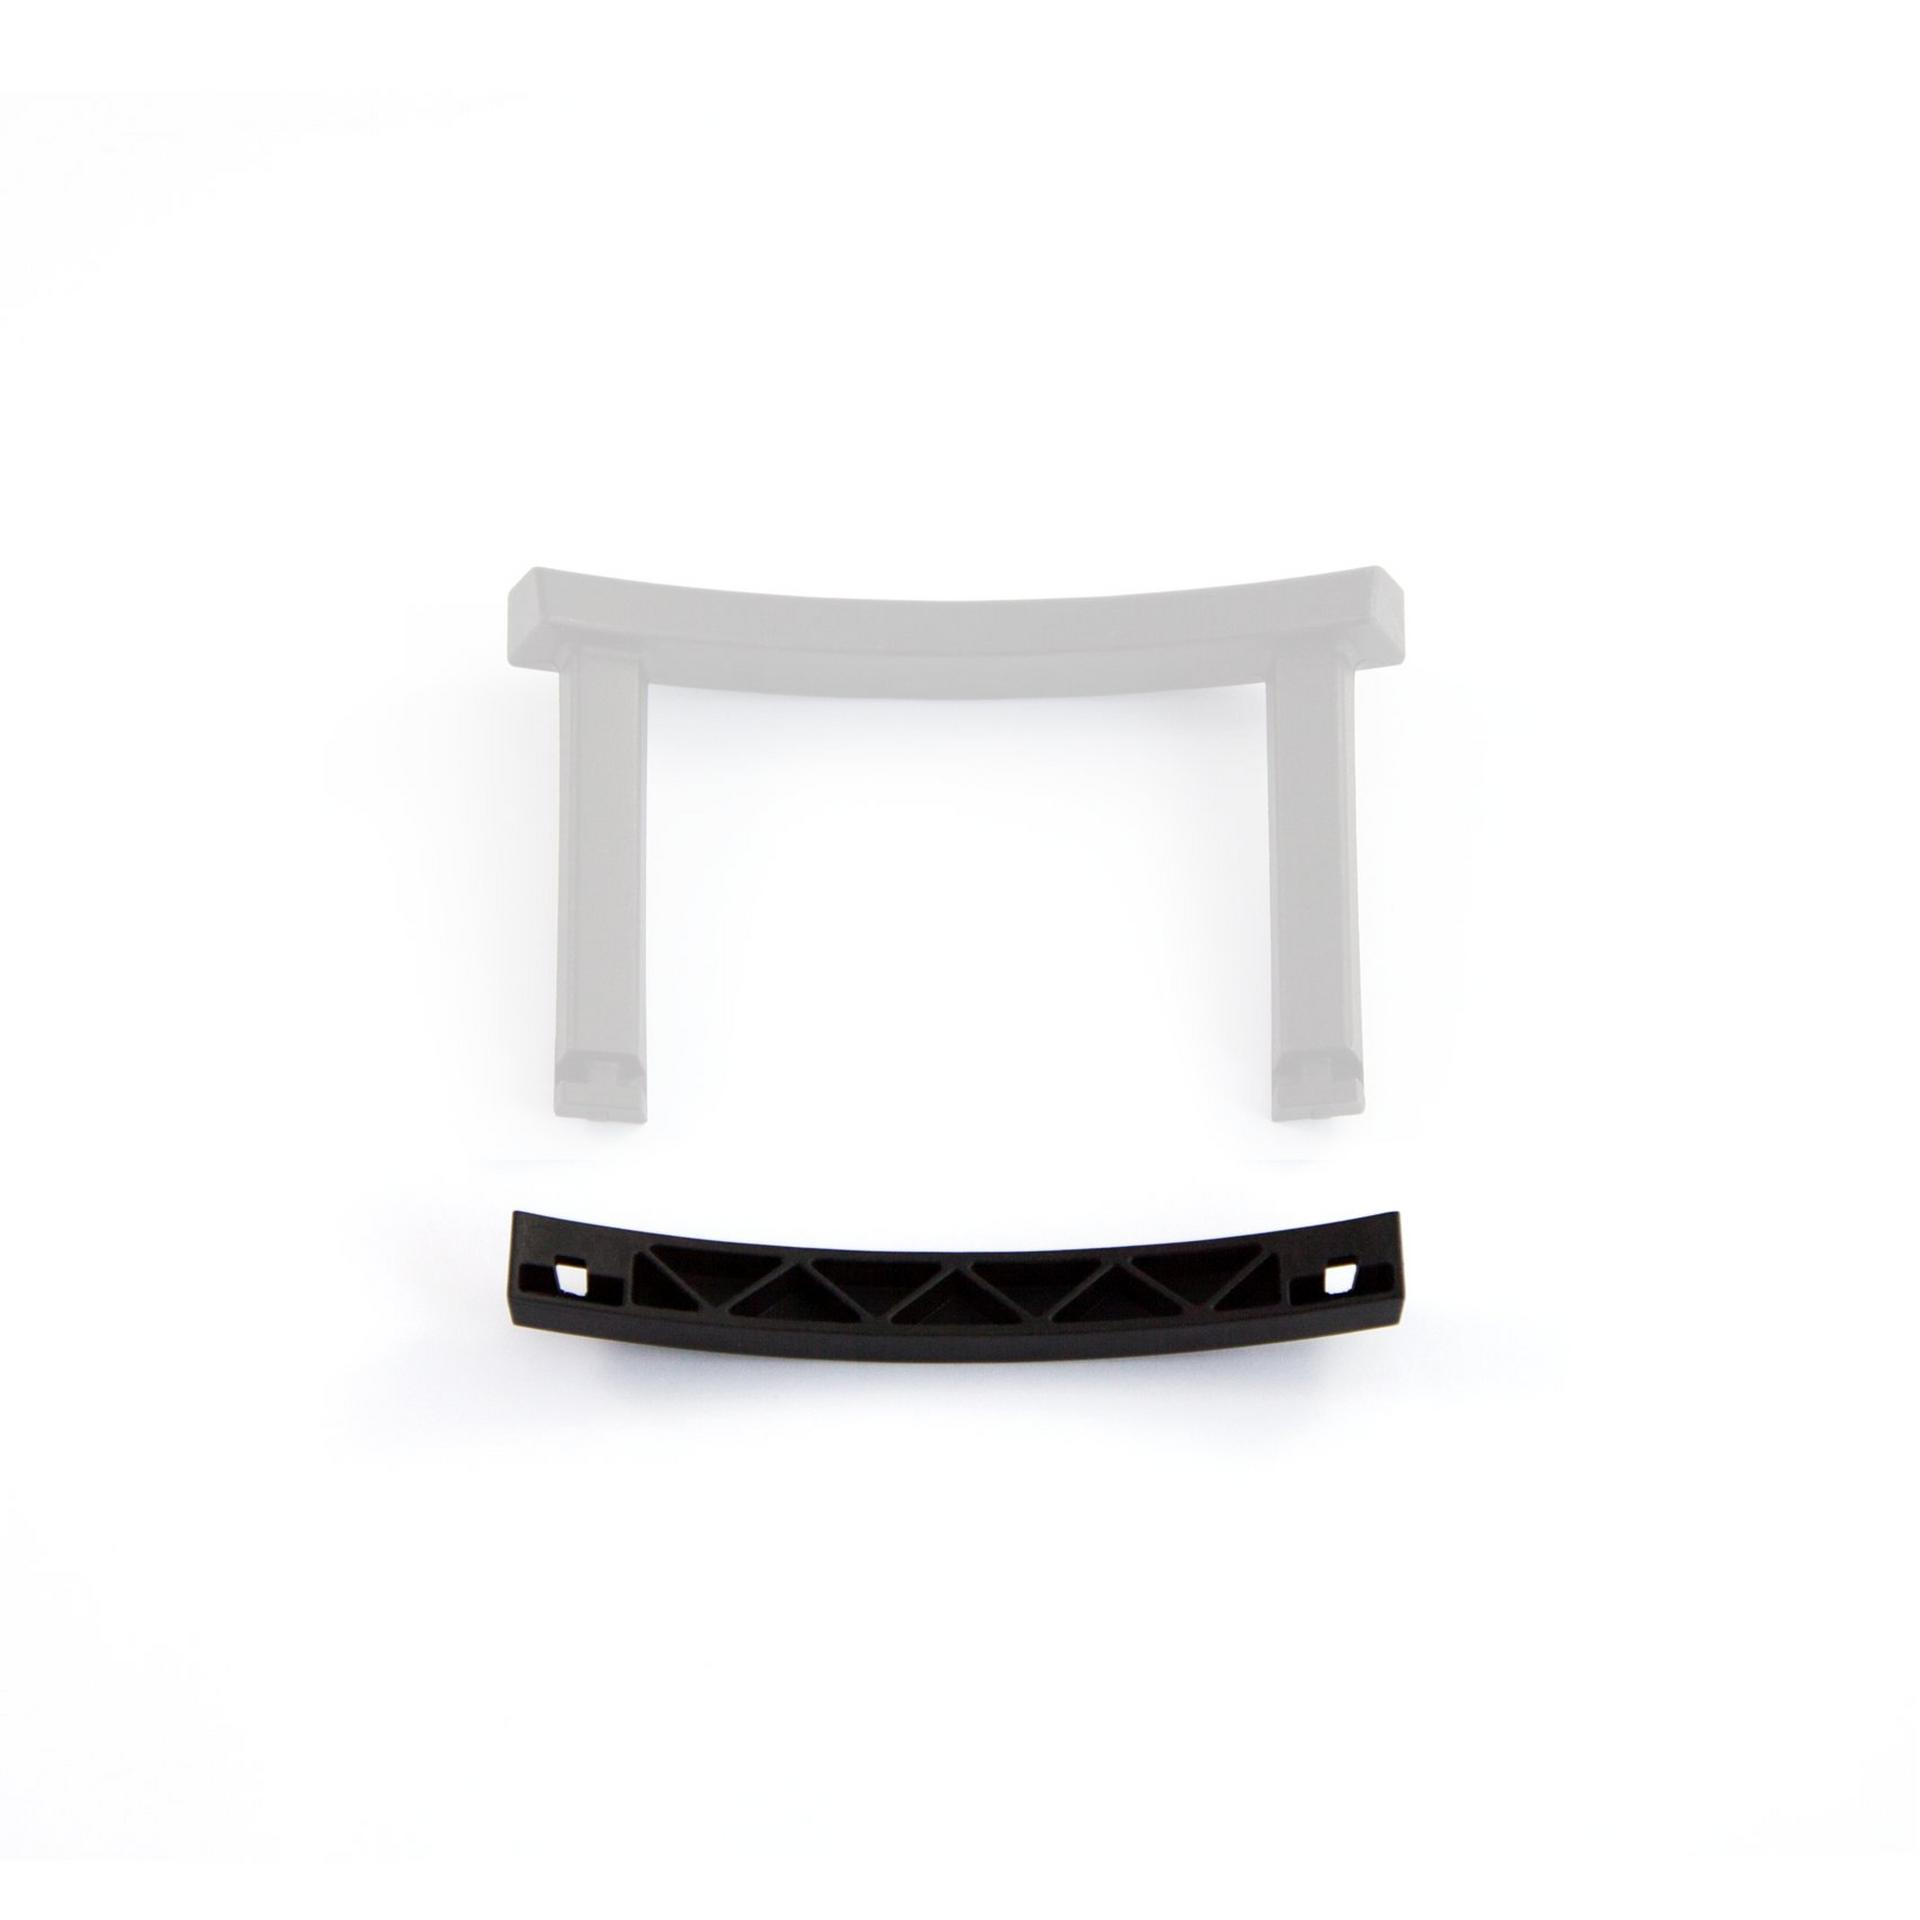 Bracket handle for CILINDRO 32 | PURO 50